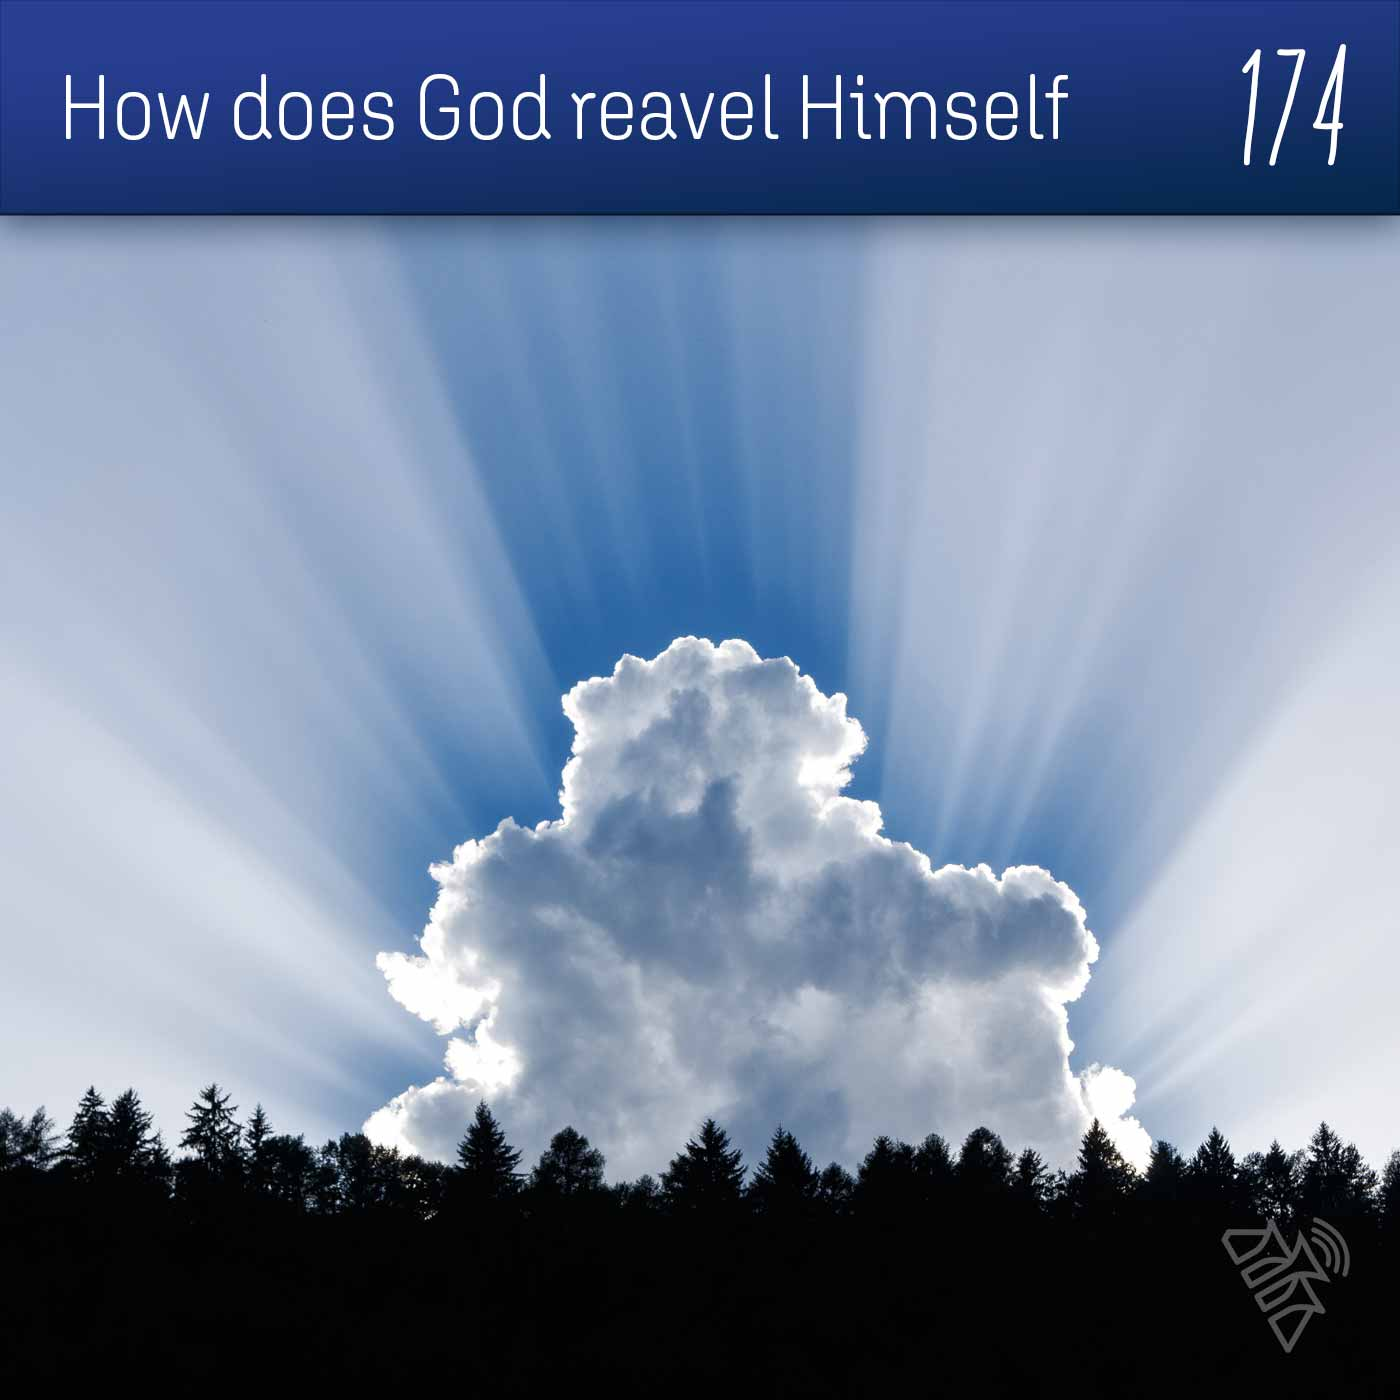 How does God reveal Himself